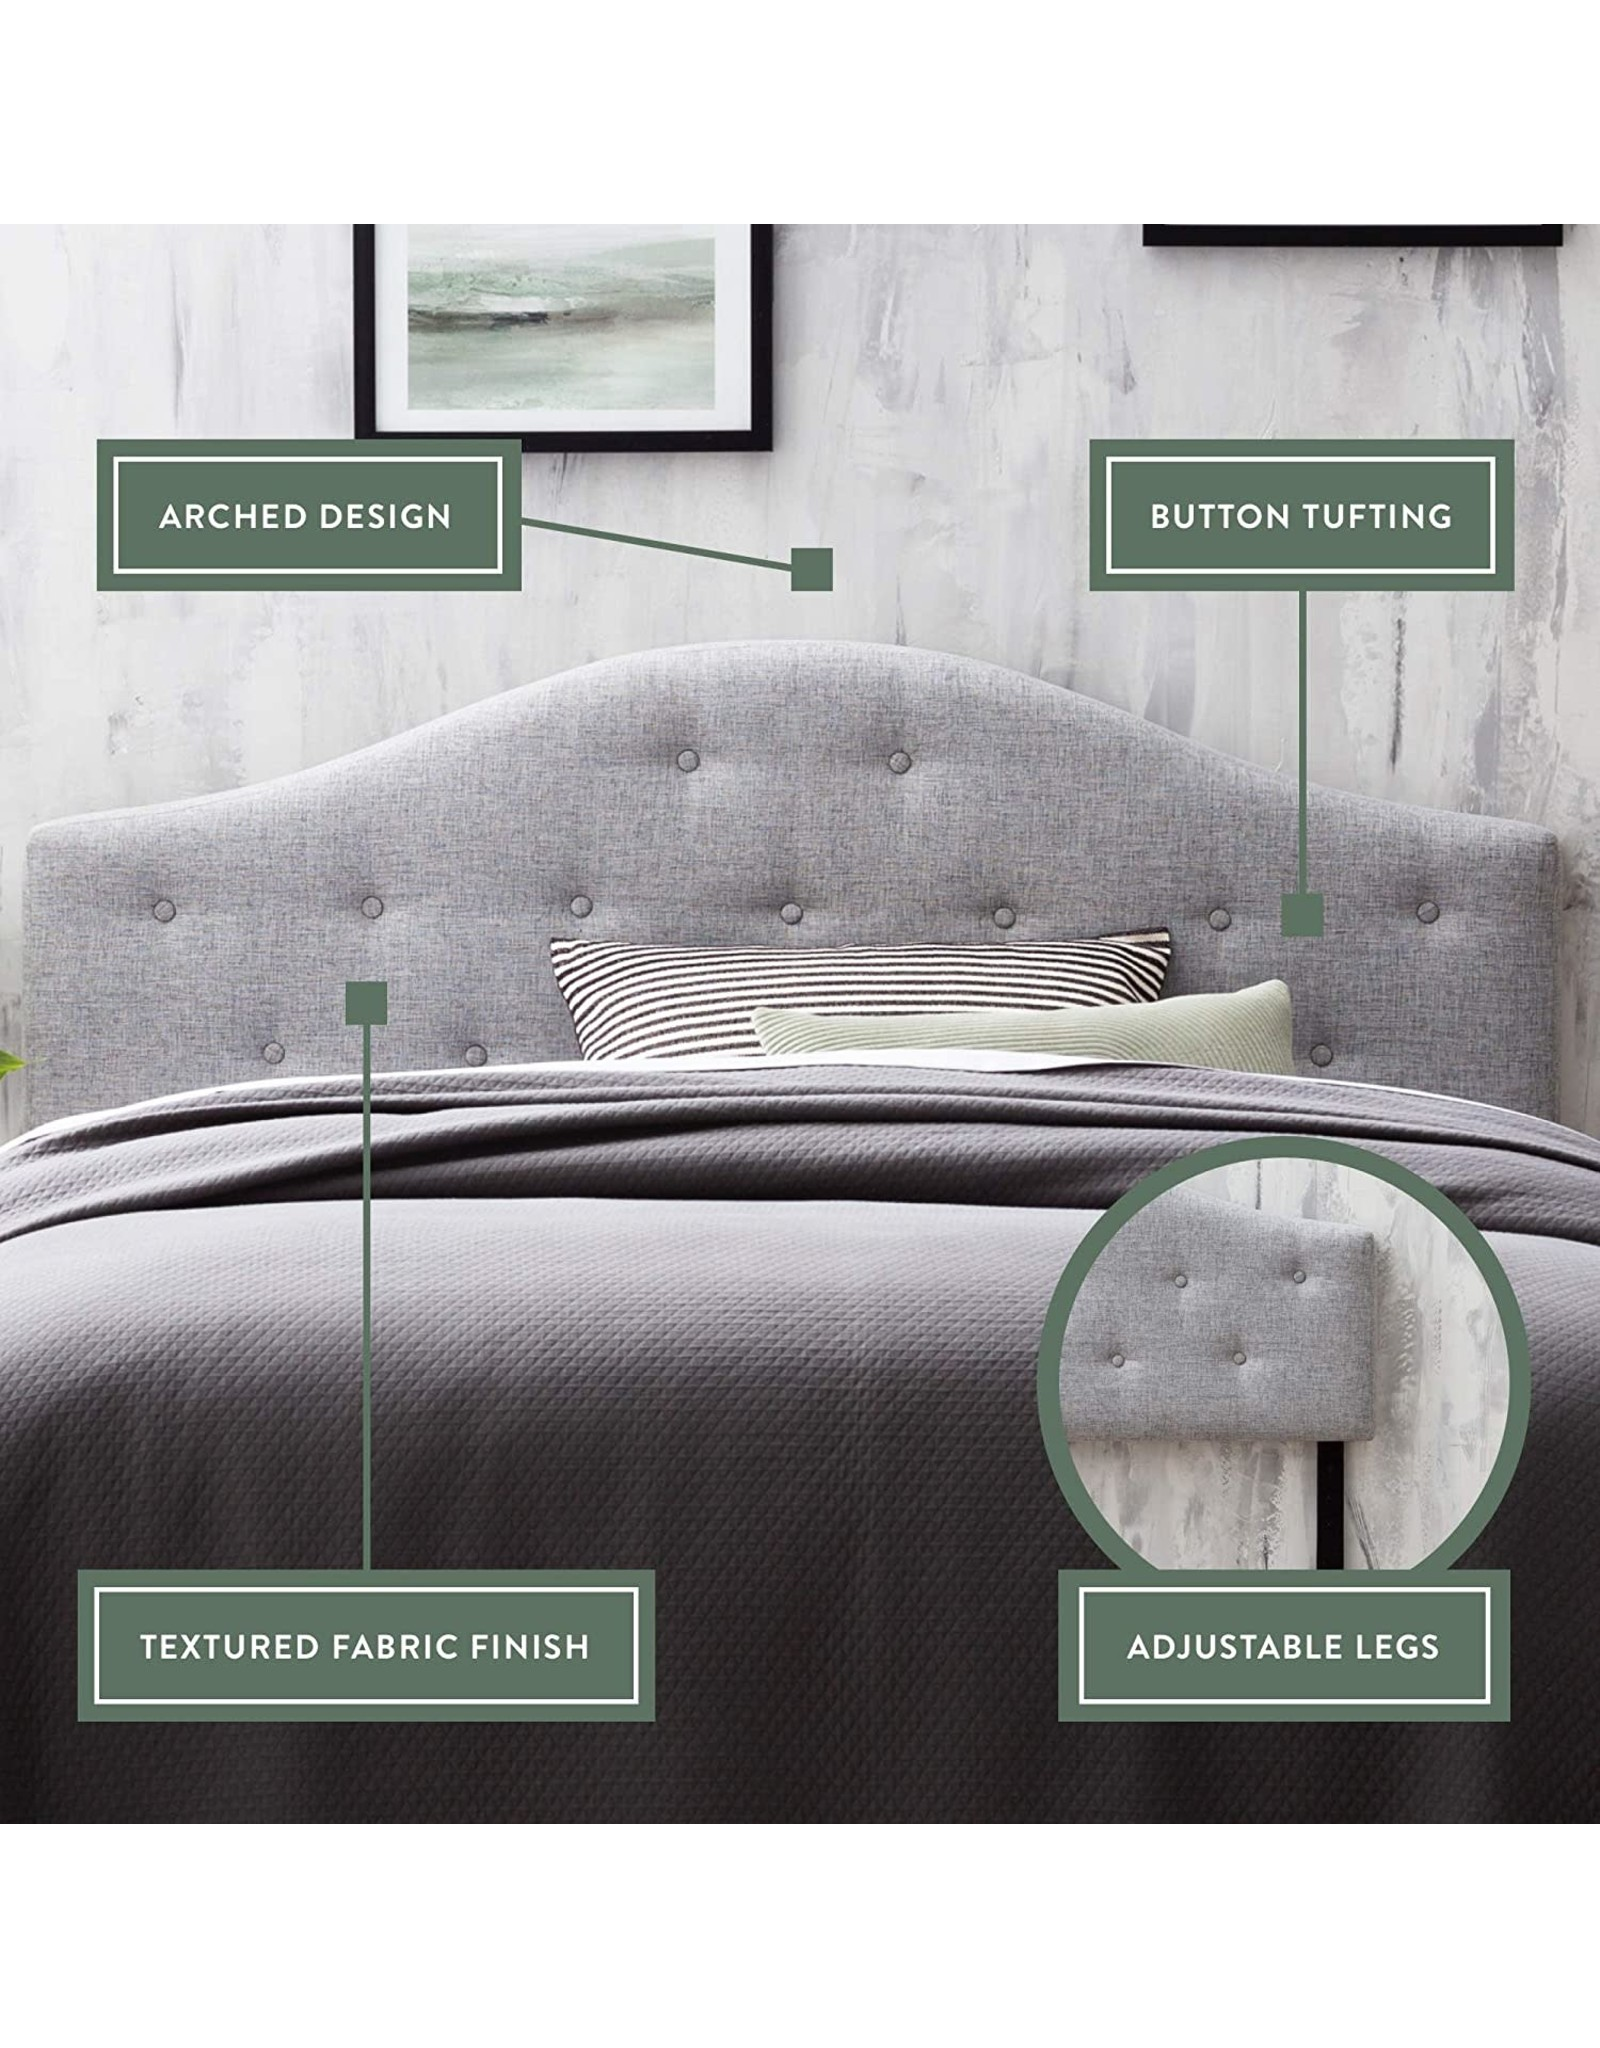 Edenbrook Edenbrook Legrand Upholstered Arched Headboard with Button Tufting, King/California King, Pebble